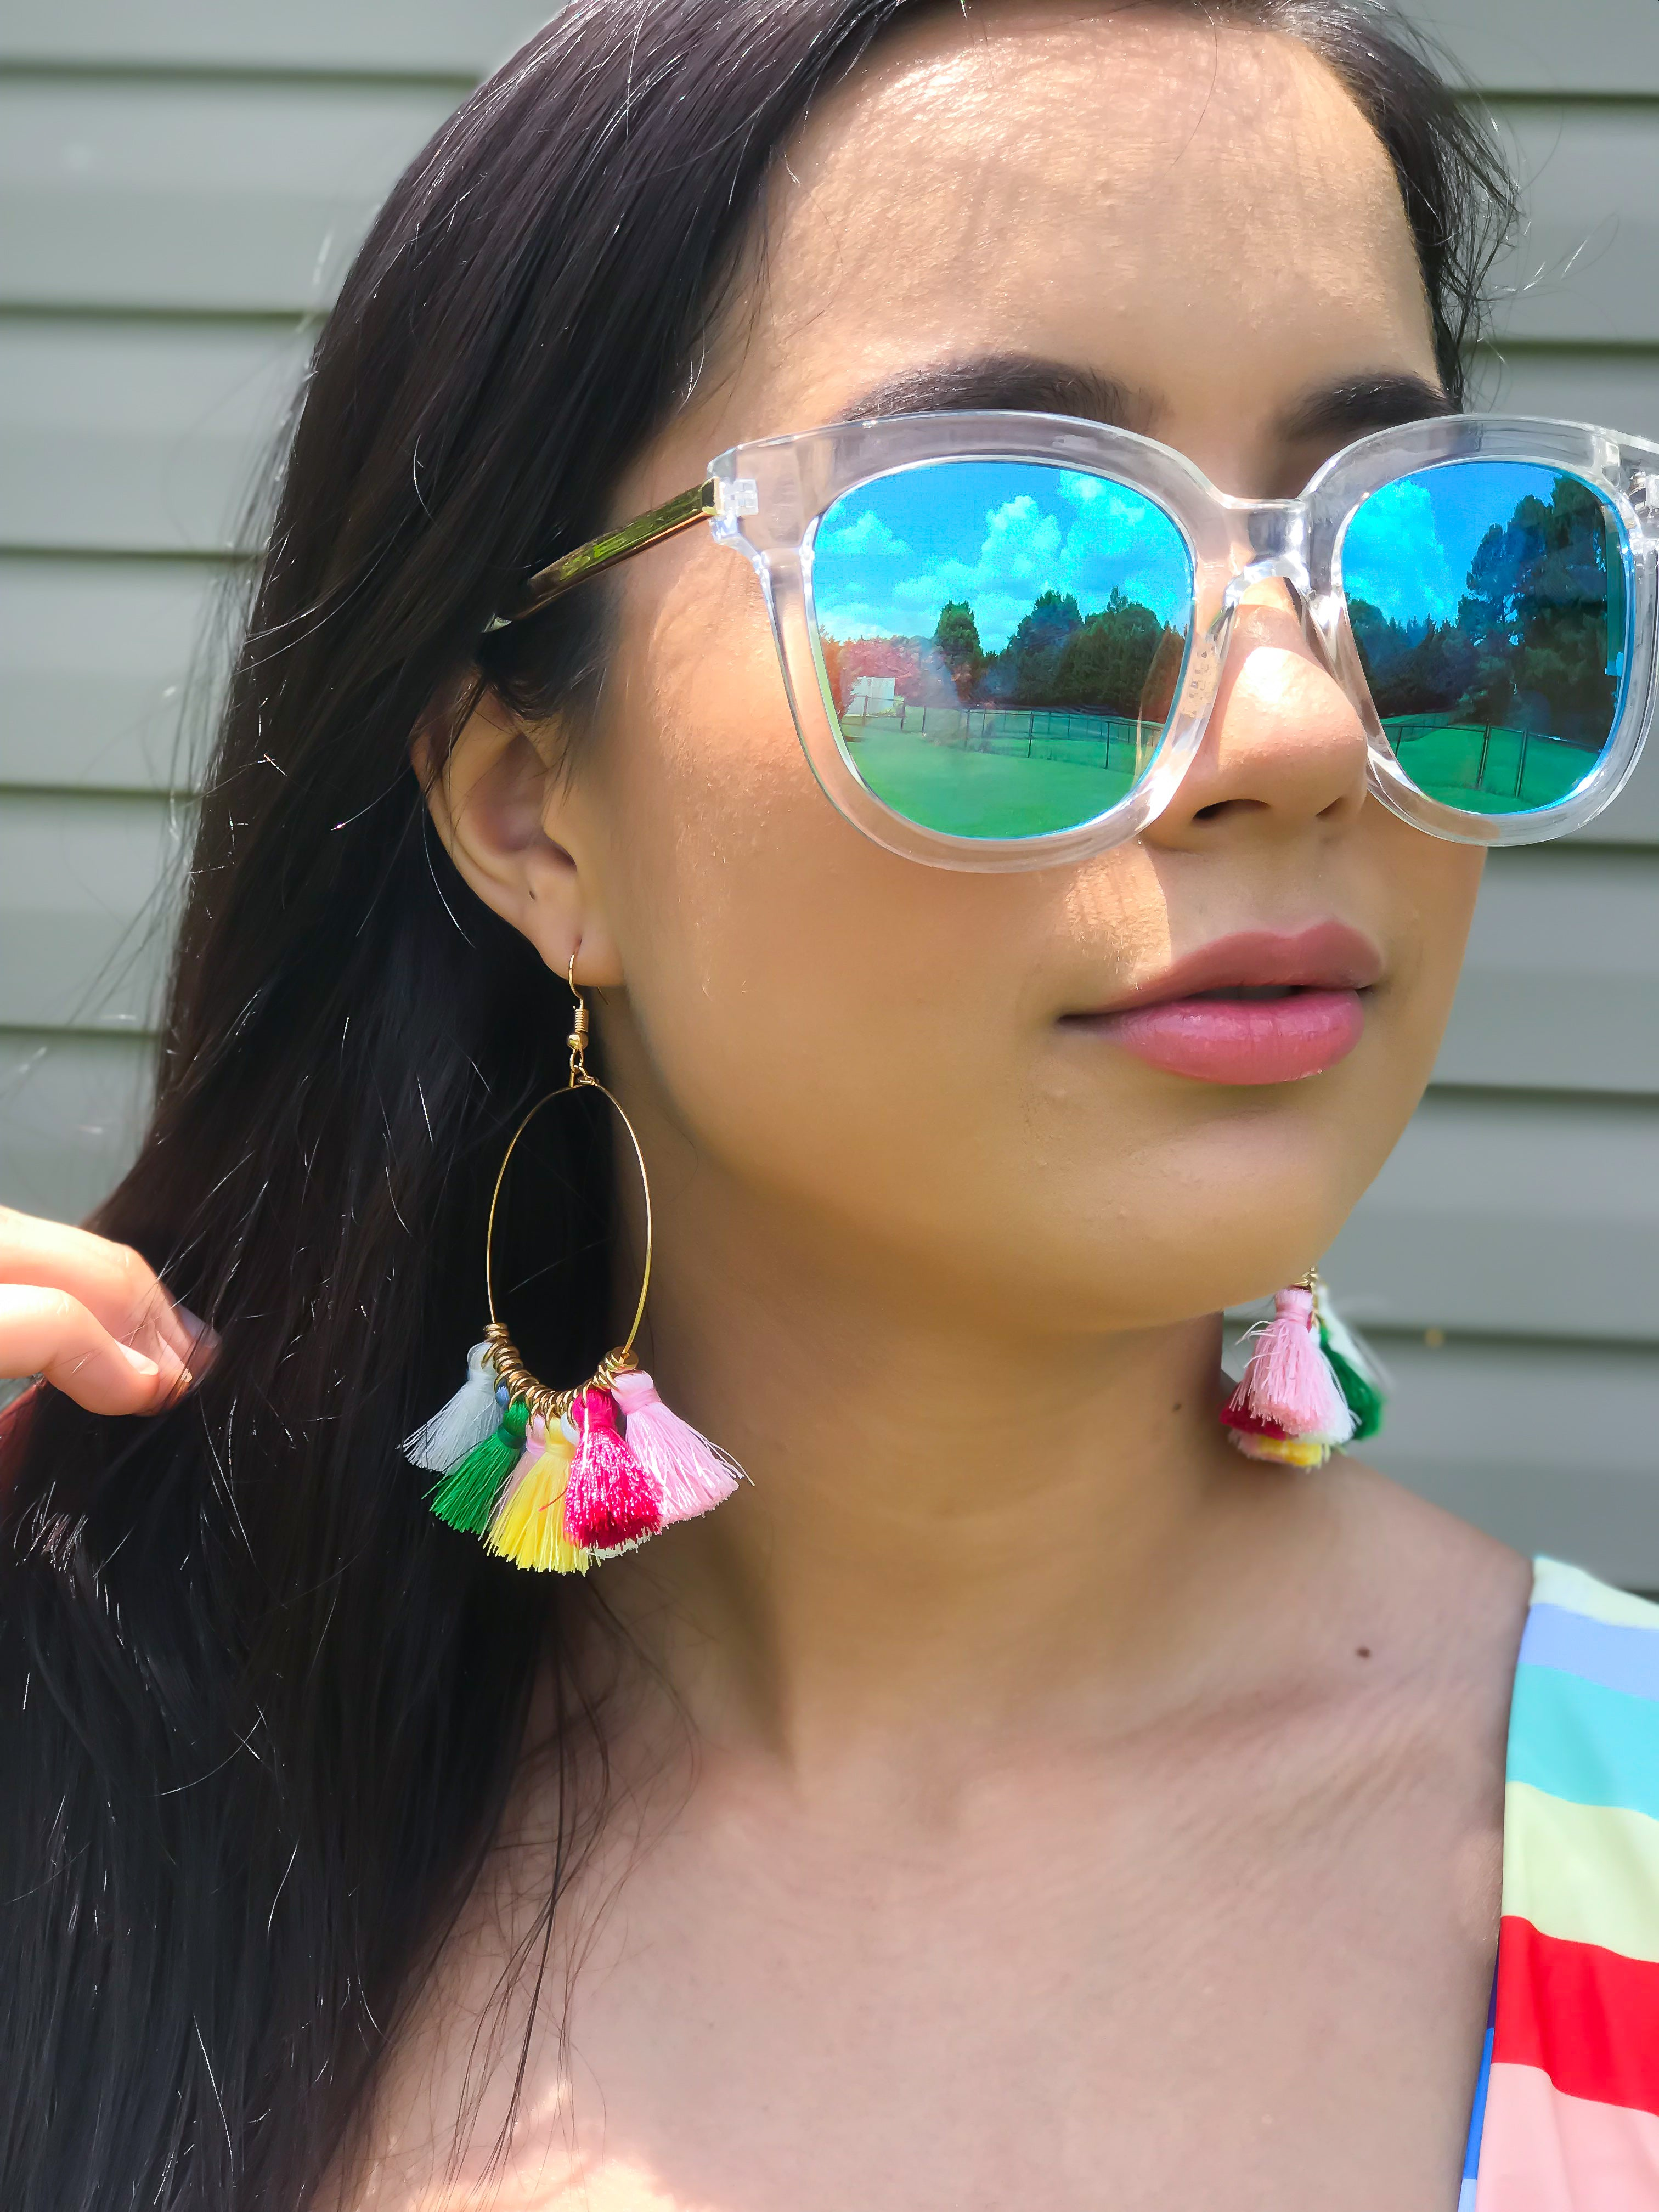 Let's Take A Road Trip Blue Sunglasses - The Flawless Babe Boutique